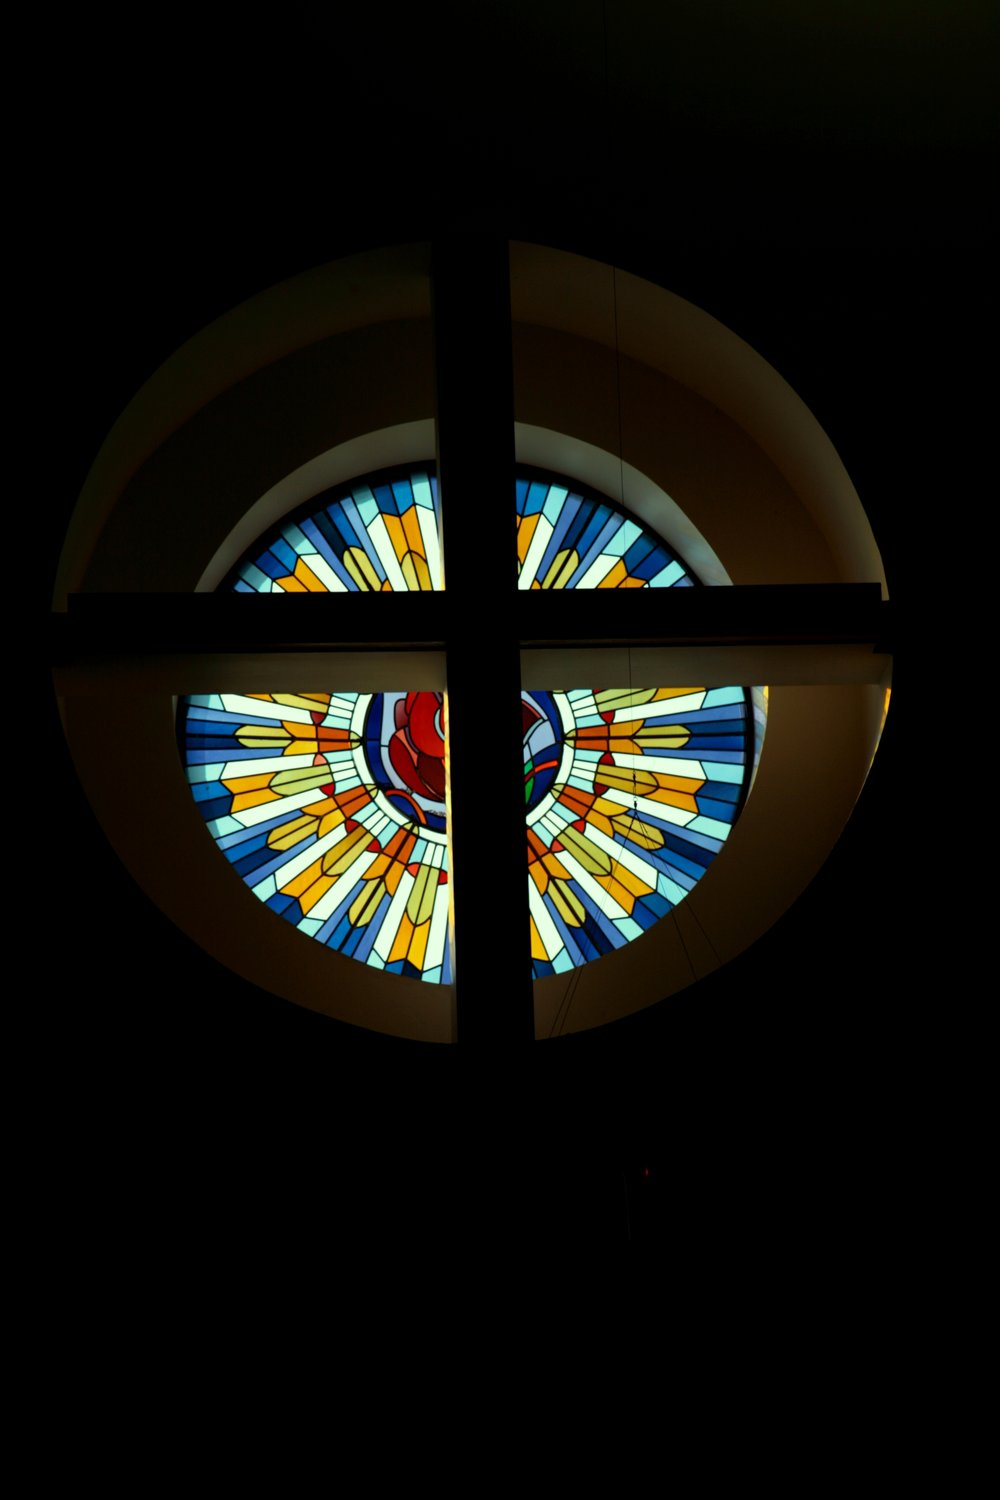 The rose stained glass window in the sanctuary, reminds us of Christ's love shining through.